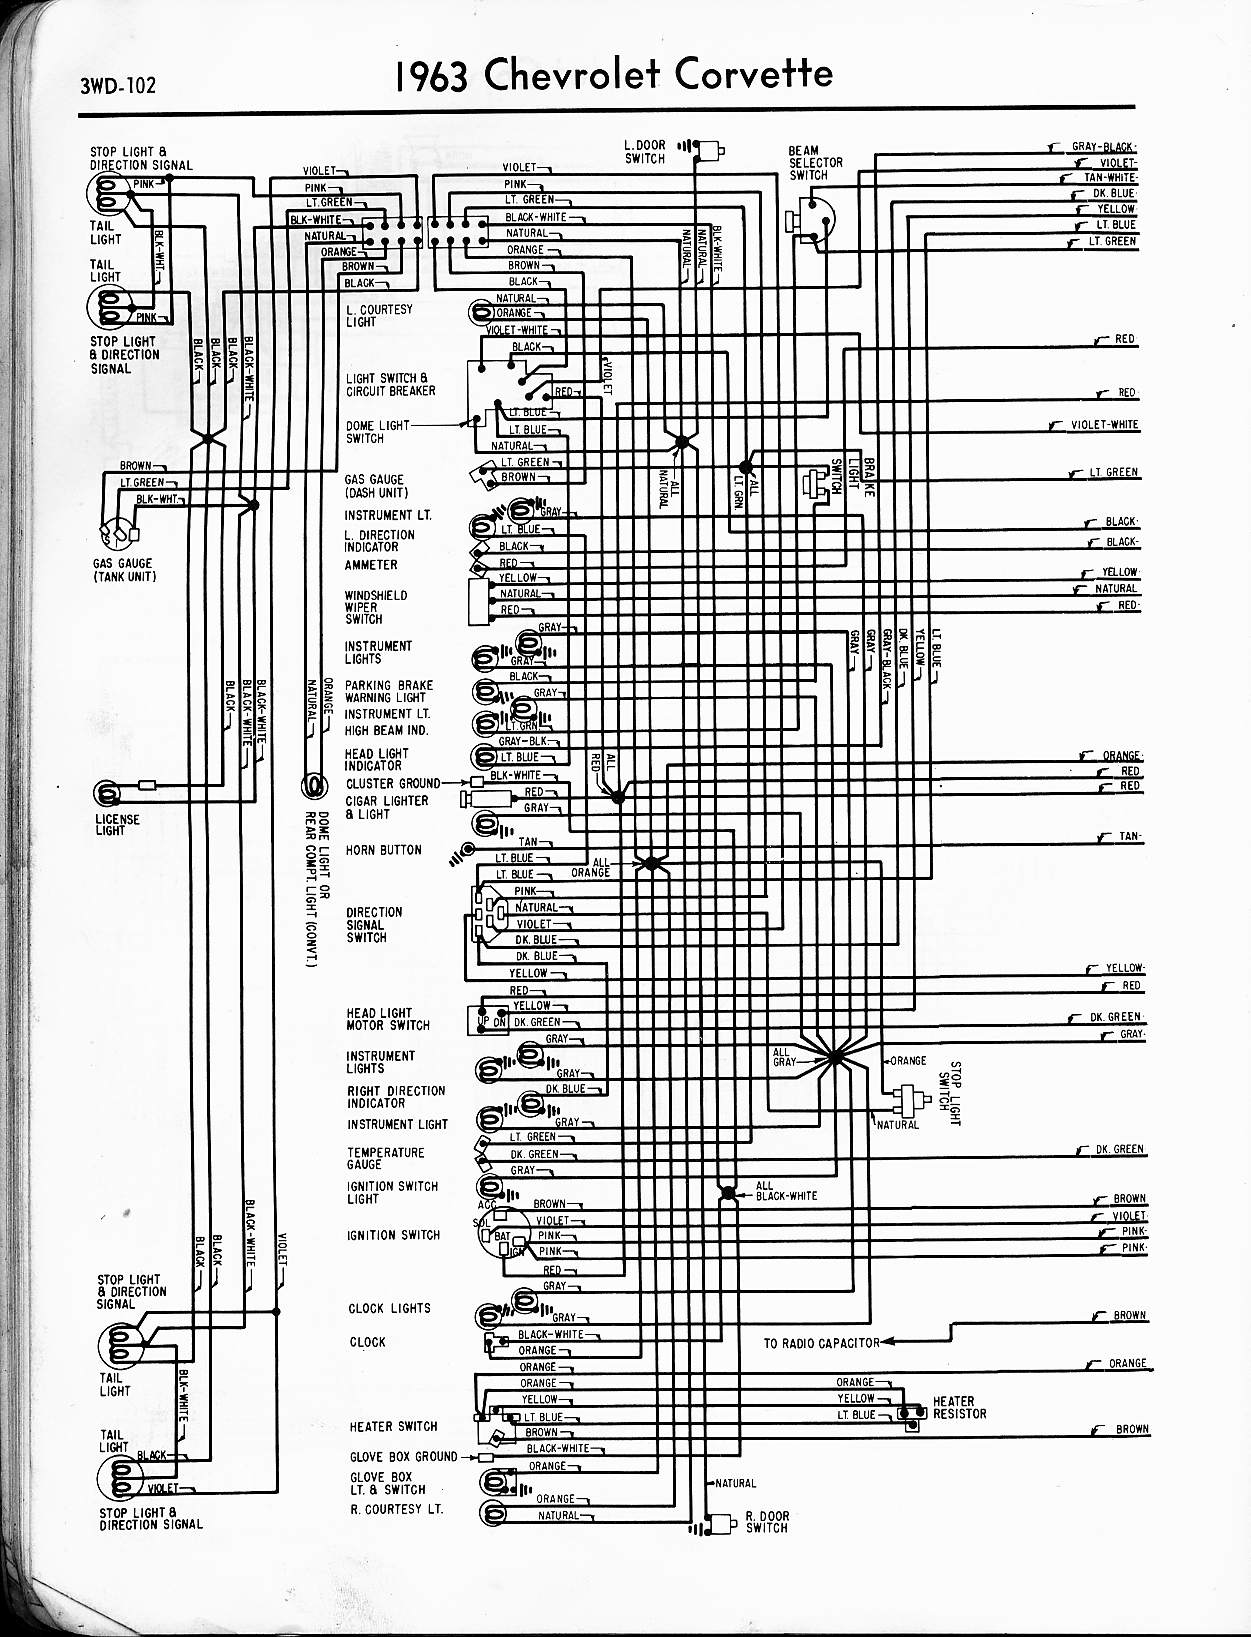 1963 impala wire harness diagram wiring diagram1963 chevrolet impala parts